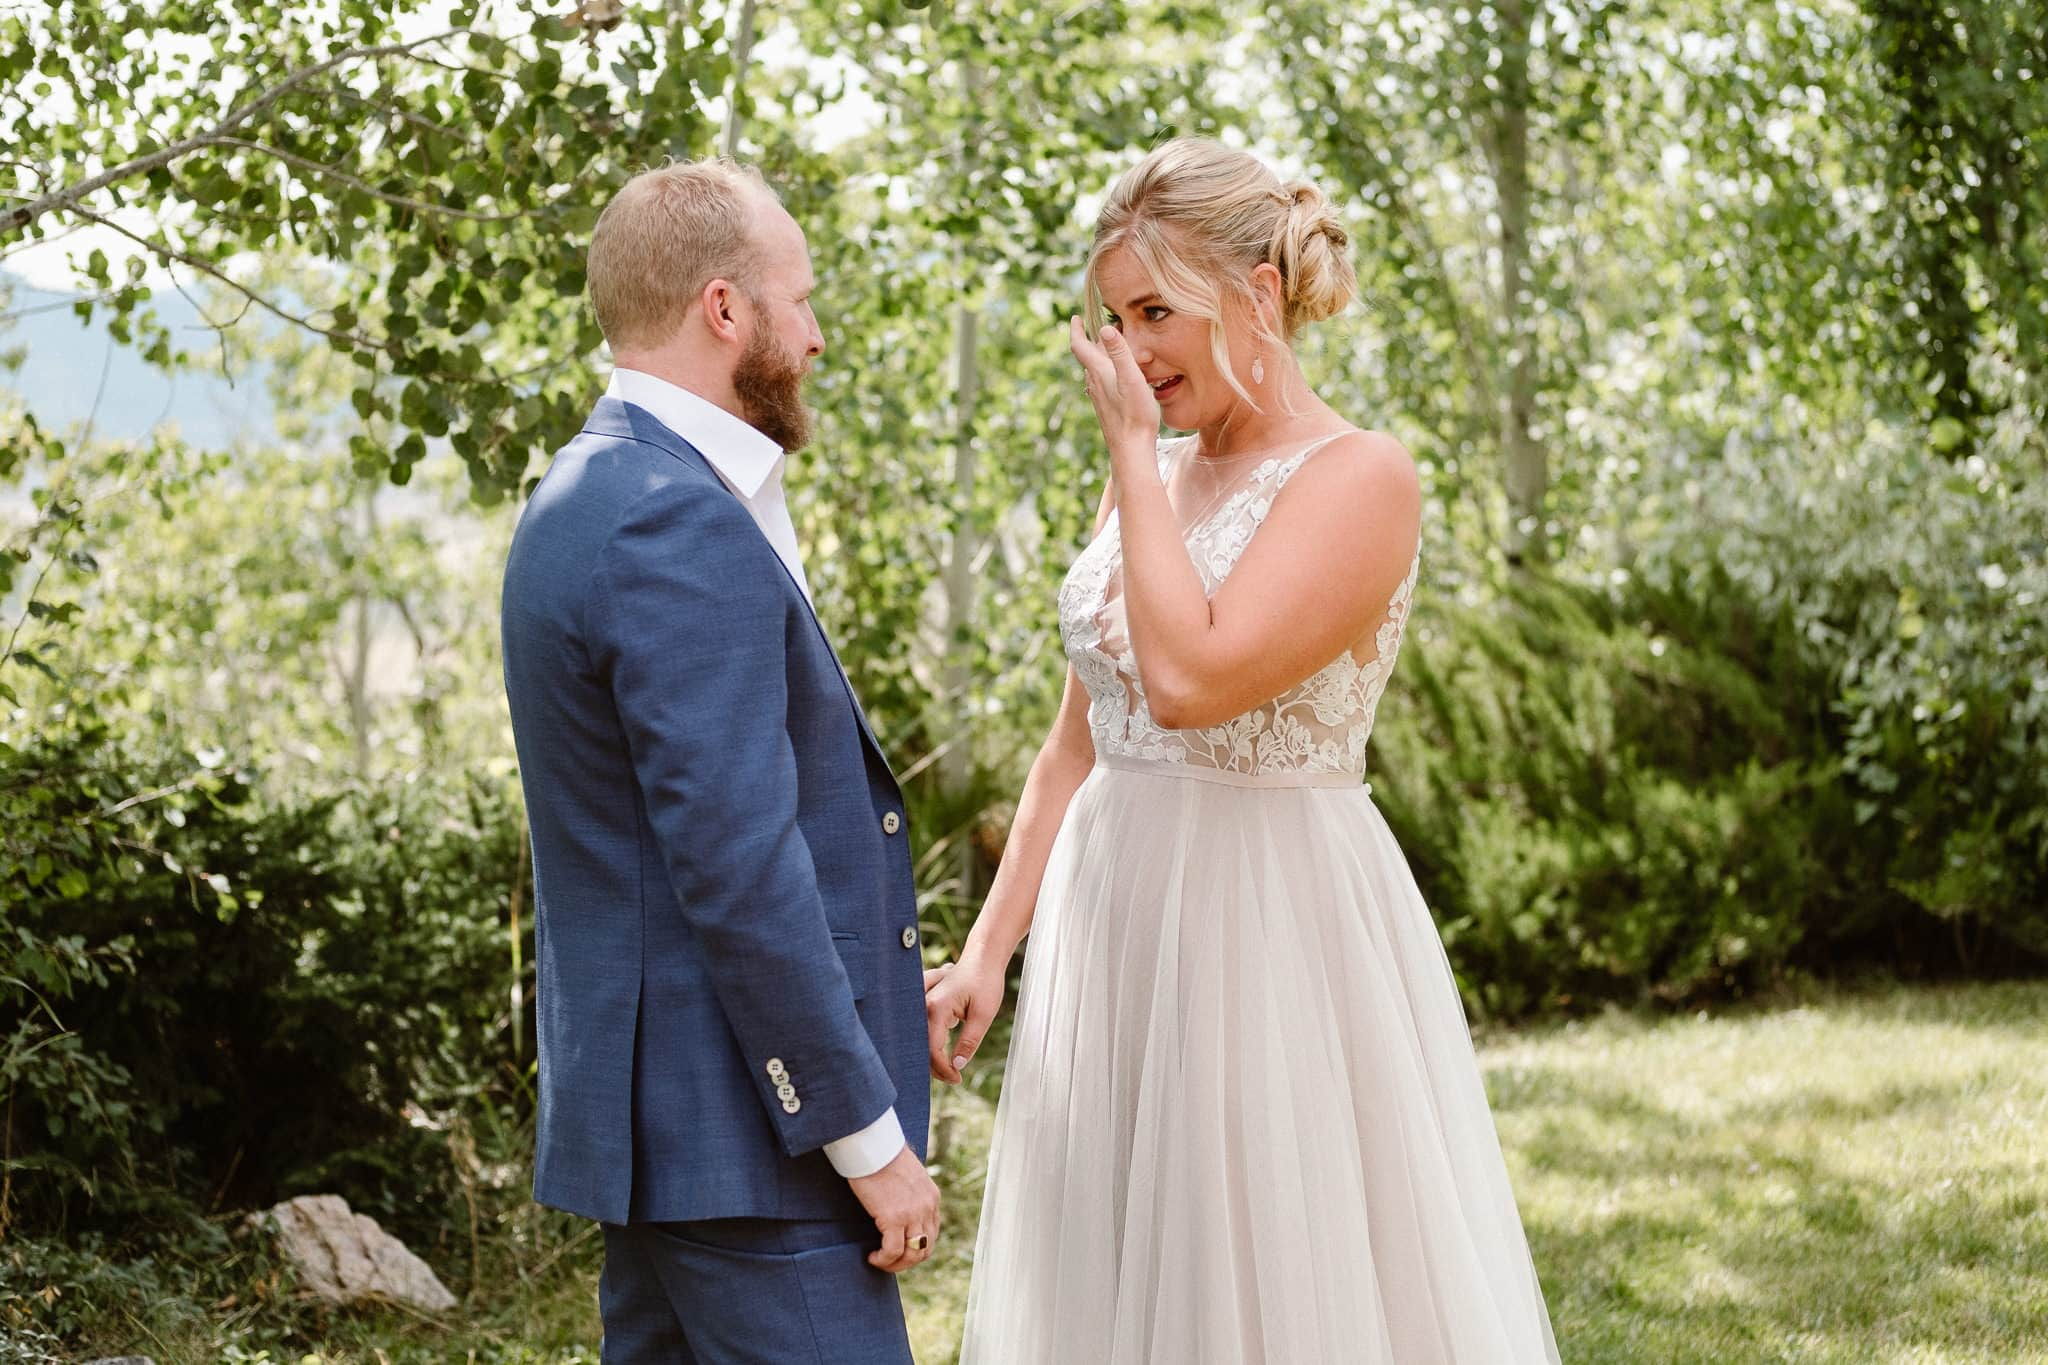 Steamboat Springs wedding photographer, La Joya Dulce wedding, Colorado ranch wedding venues, bride crying at first look